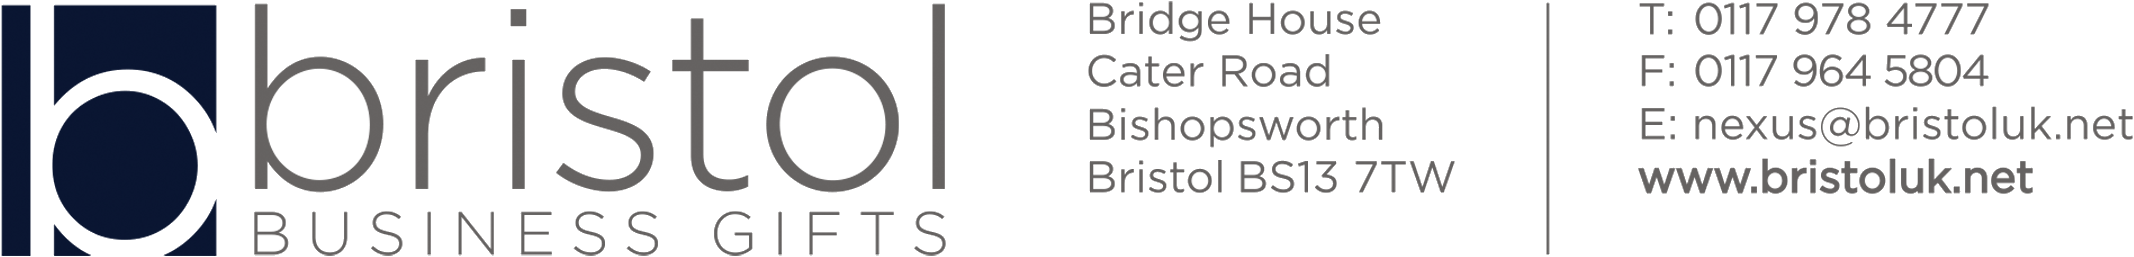 Bristol Business Gifts